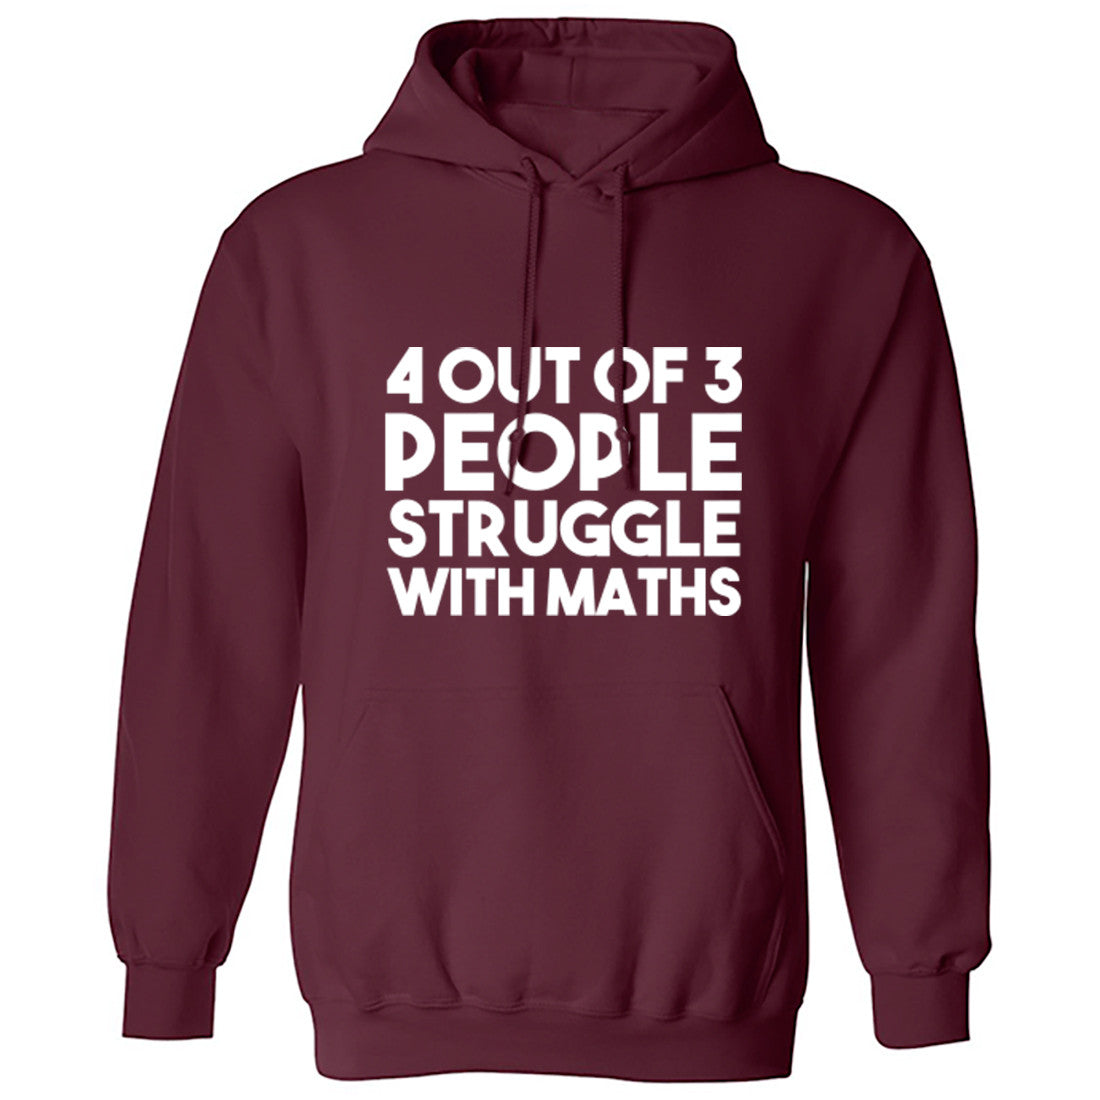 4 Out Of 3 People Struggle With Maths Unisex Hoodie K0442 - Illustrated Identity Ltd.